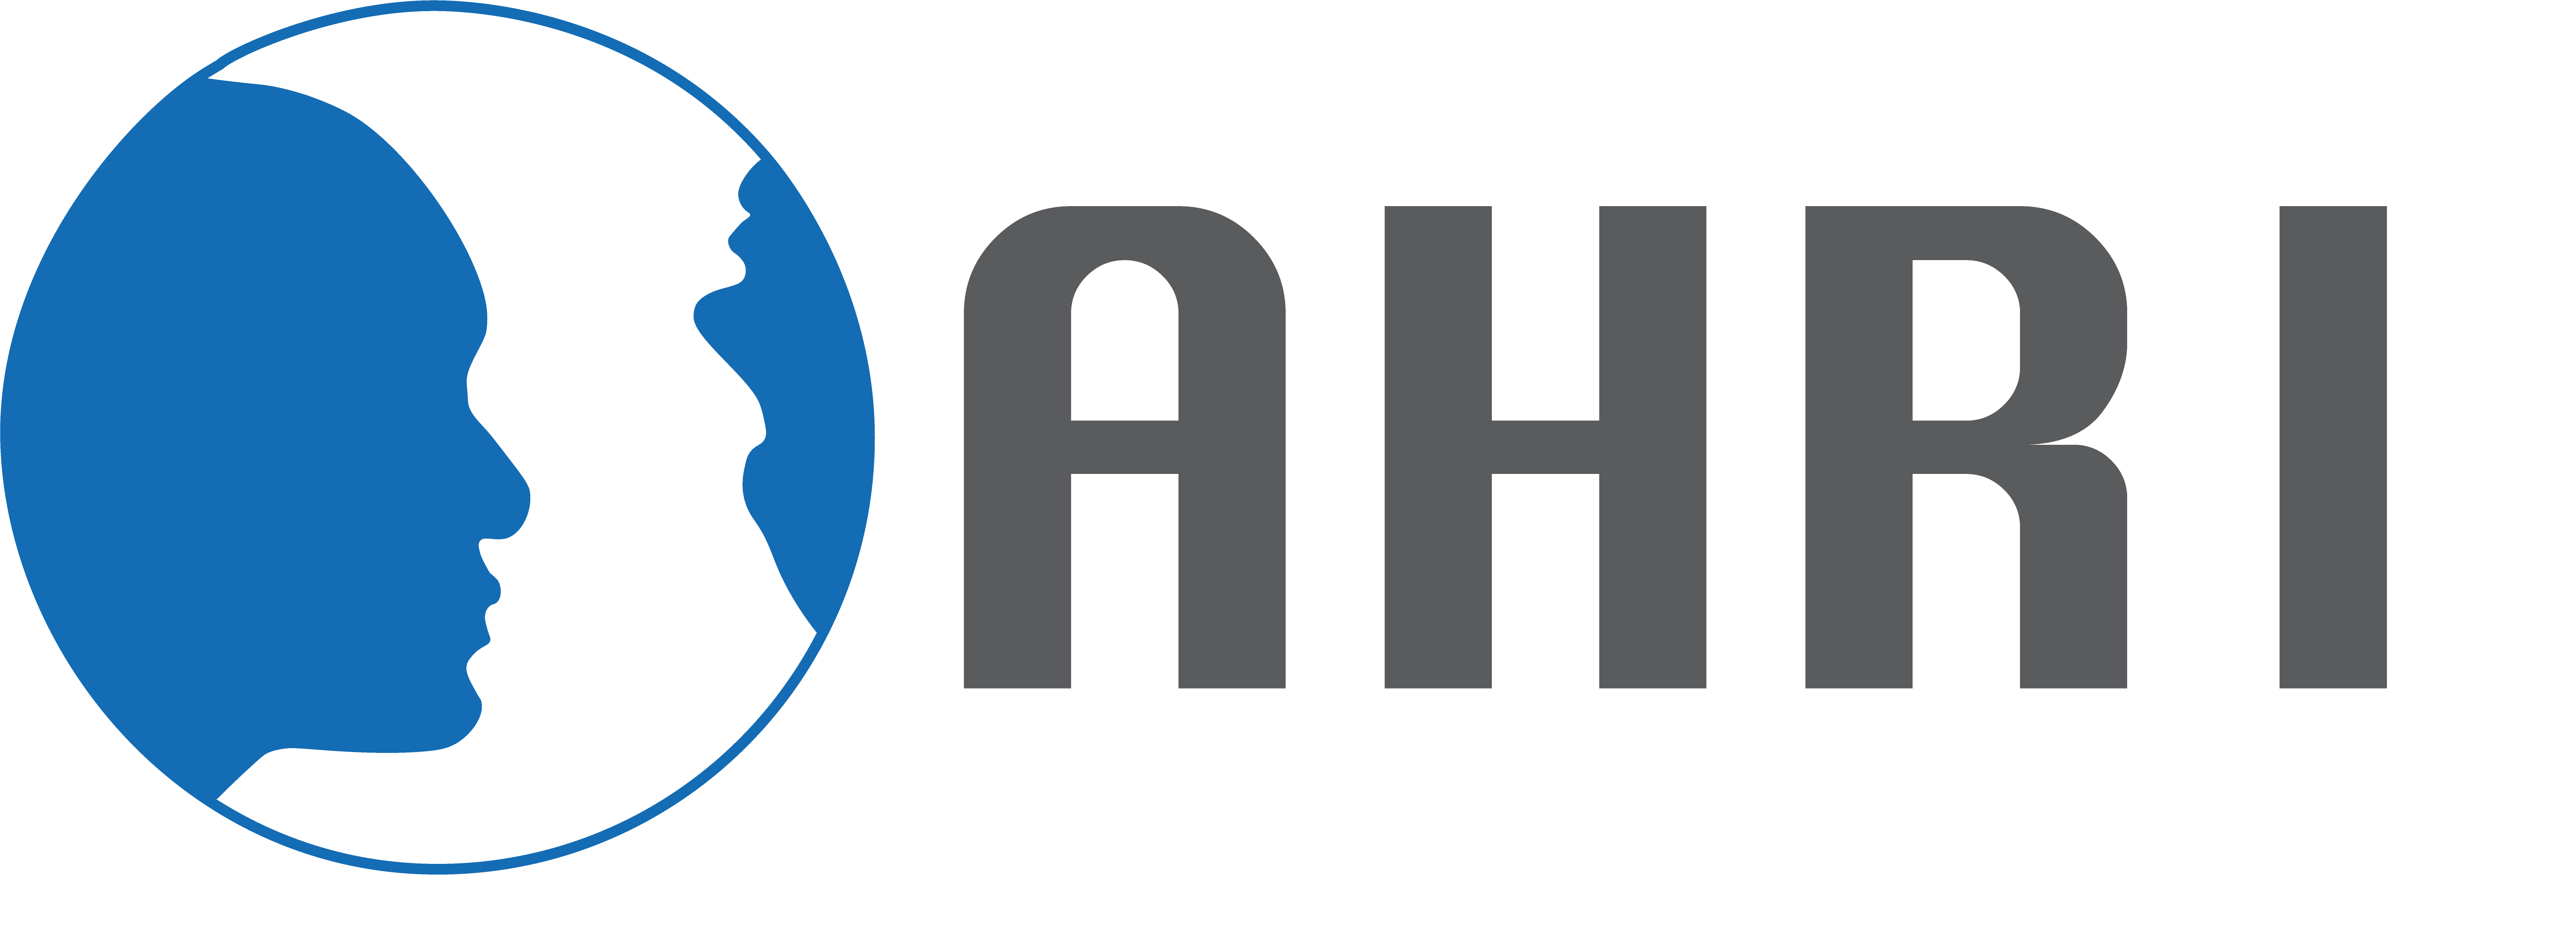 Association of Human Rights Institutes